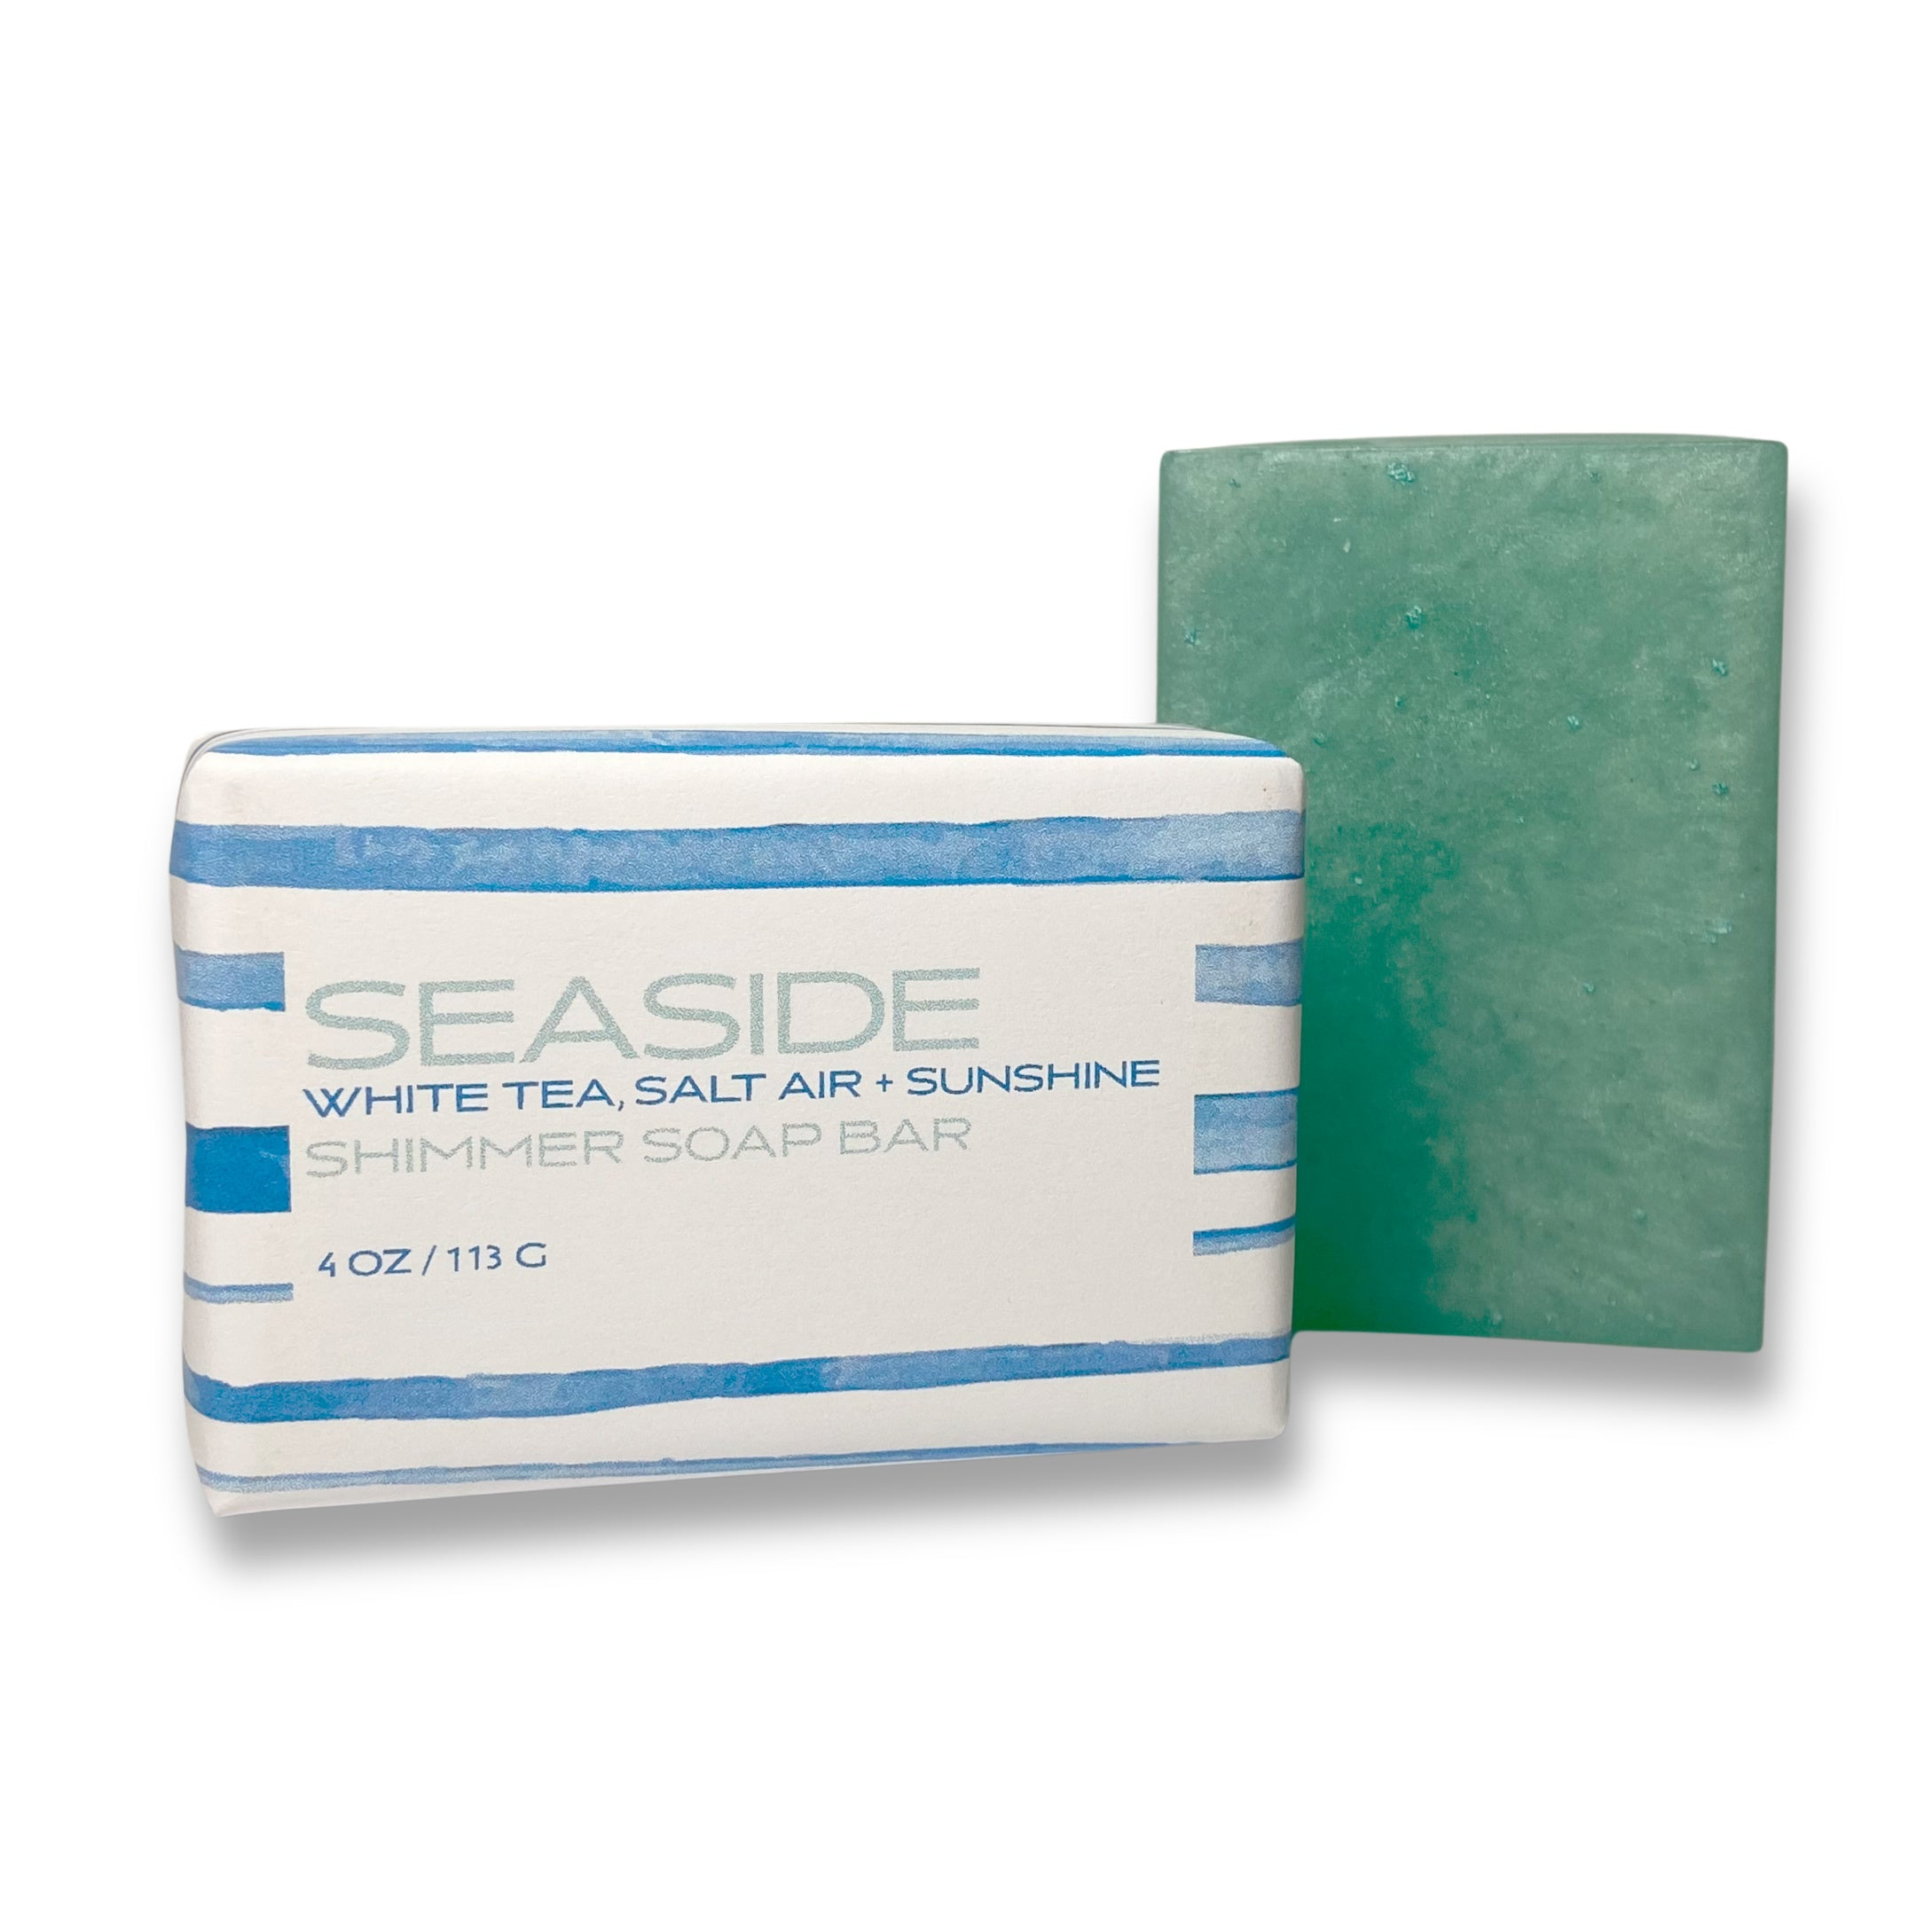 SEASIDE Shimmer Soap Bar